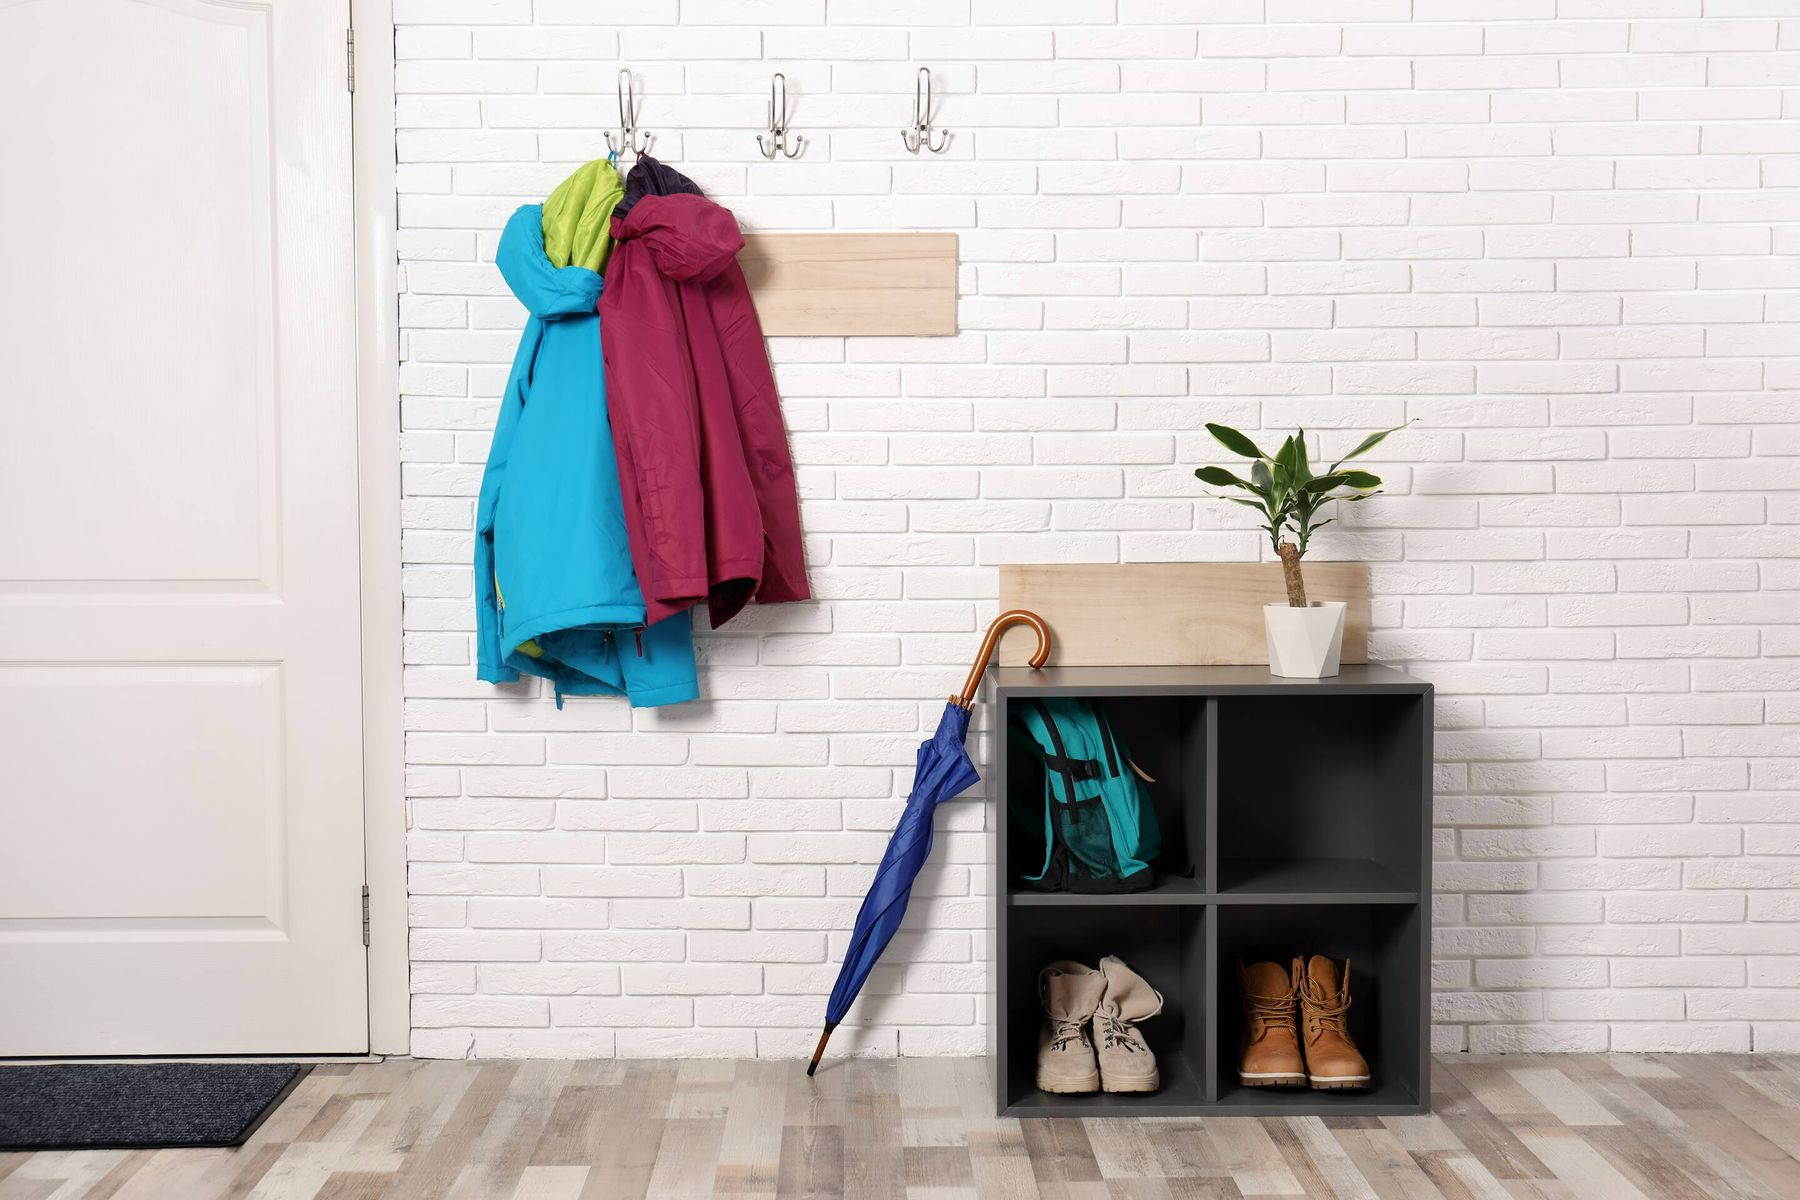 Narrow hallway storage ideas to keep your hallway tidy and organised